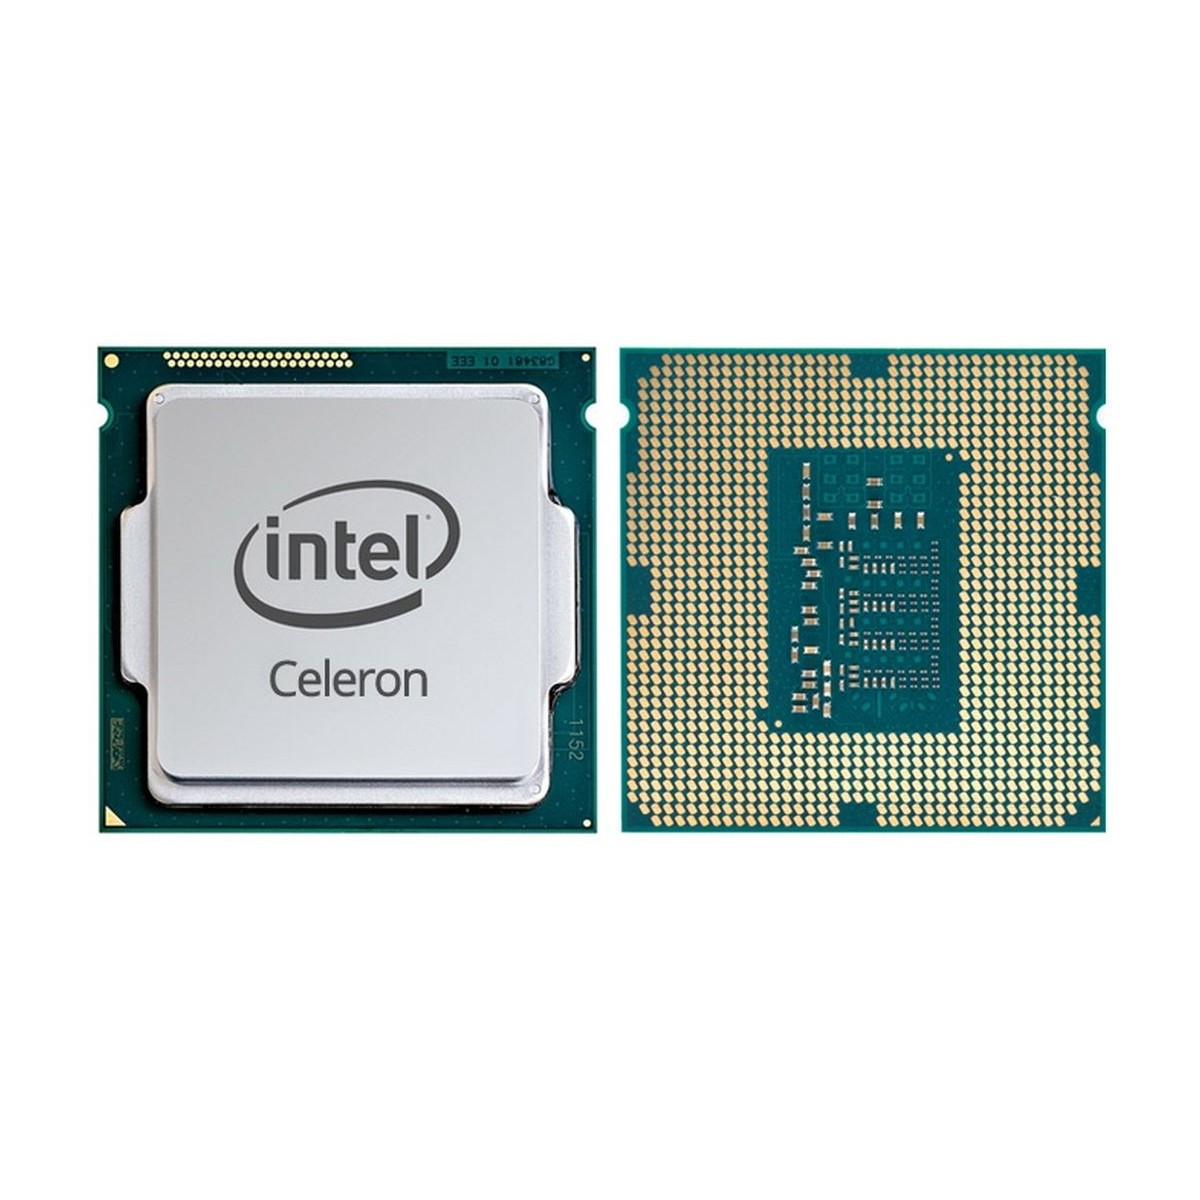 PROCESOR INTEL CORE i5 3570 3.40ghz QC SR0T7 LGA1155